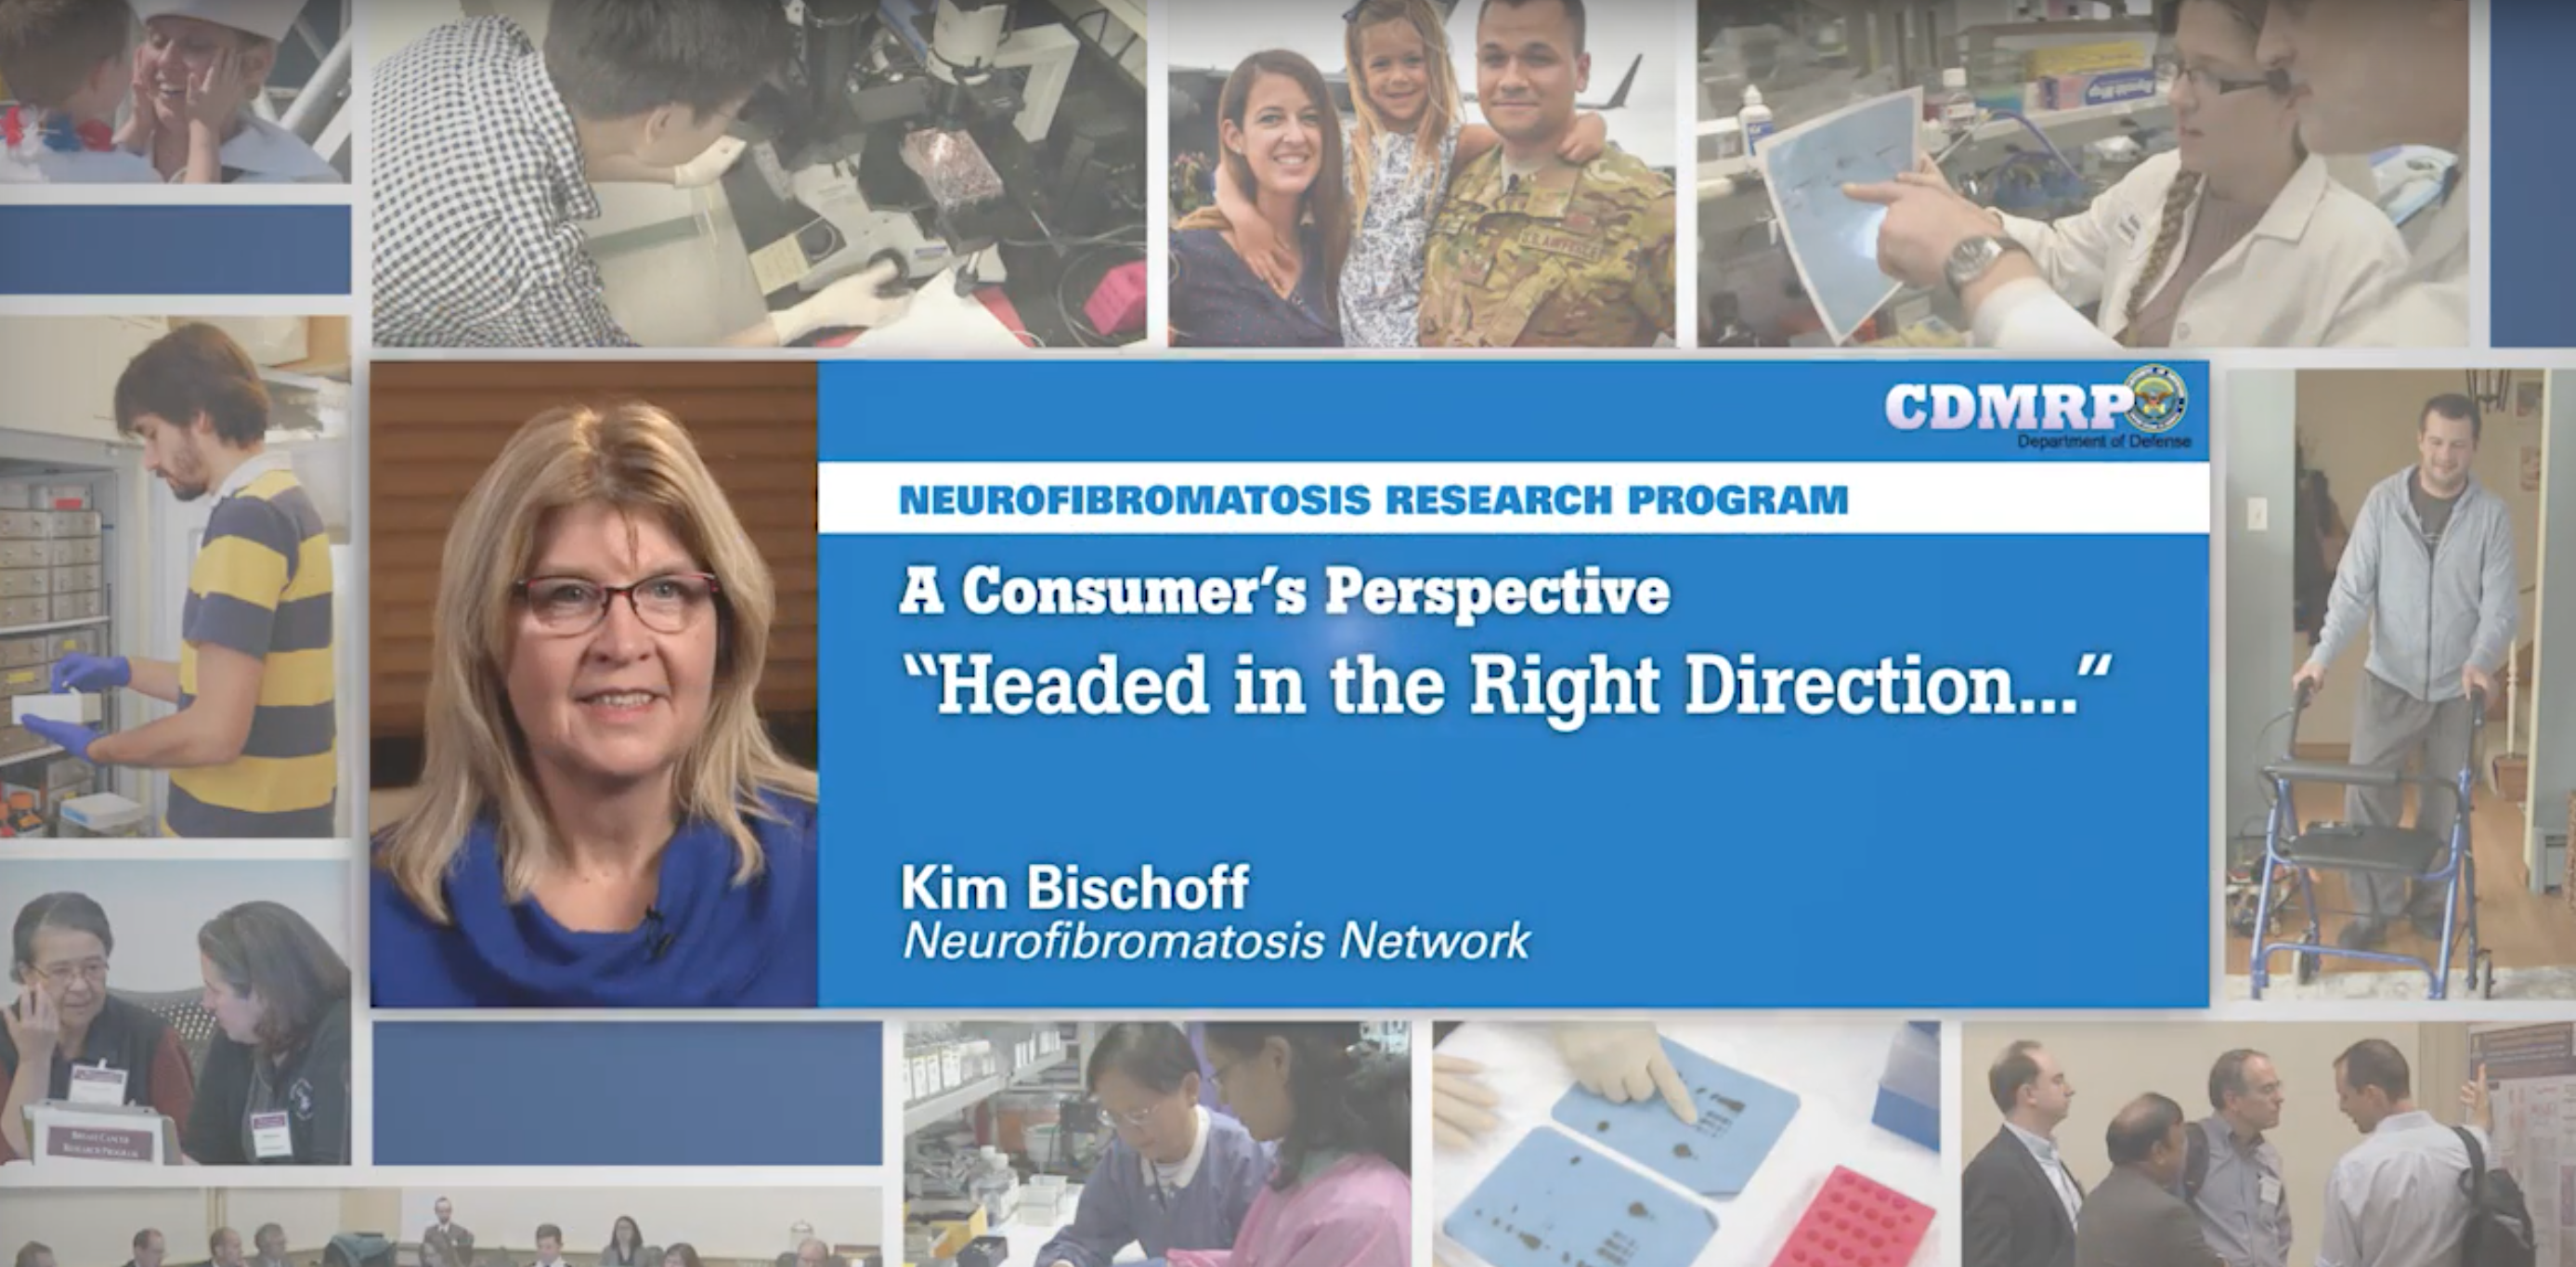 YouTube Video of Kim Bischoff from the Nuerofibromatosis Network